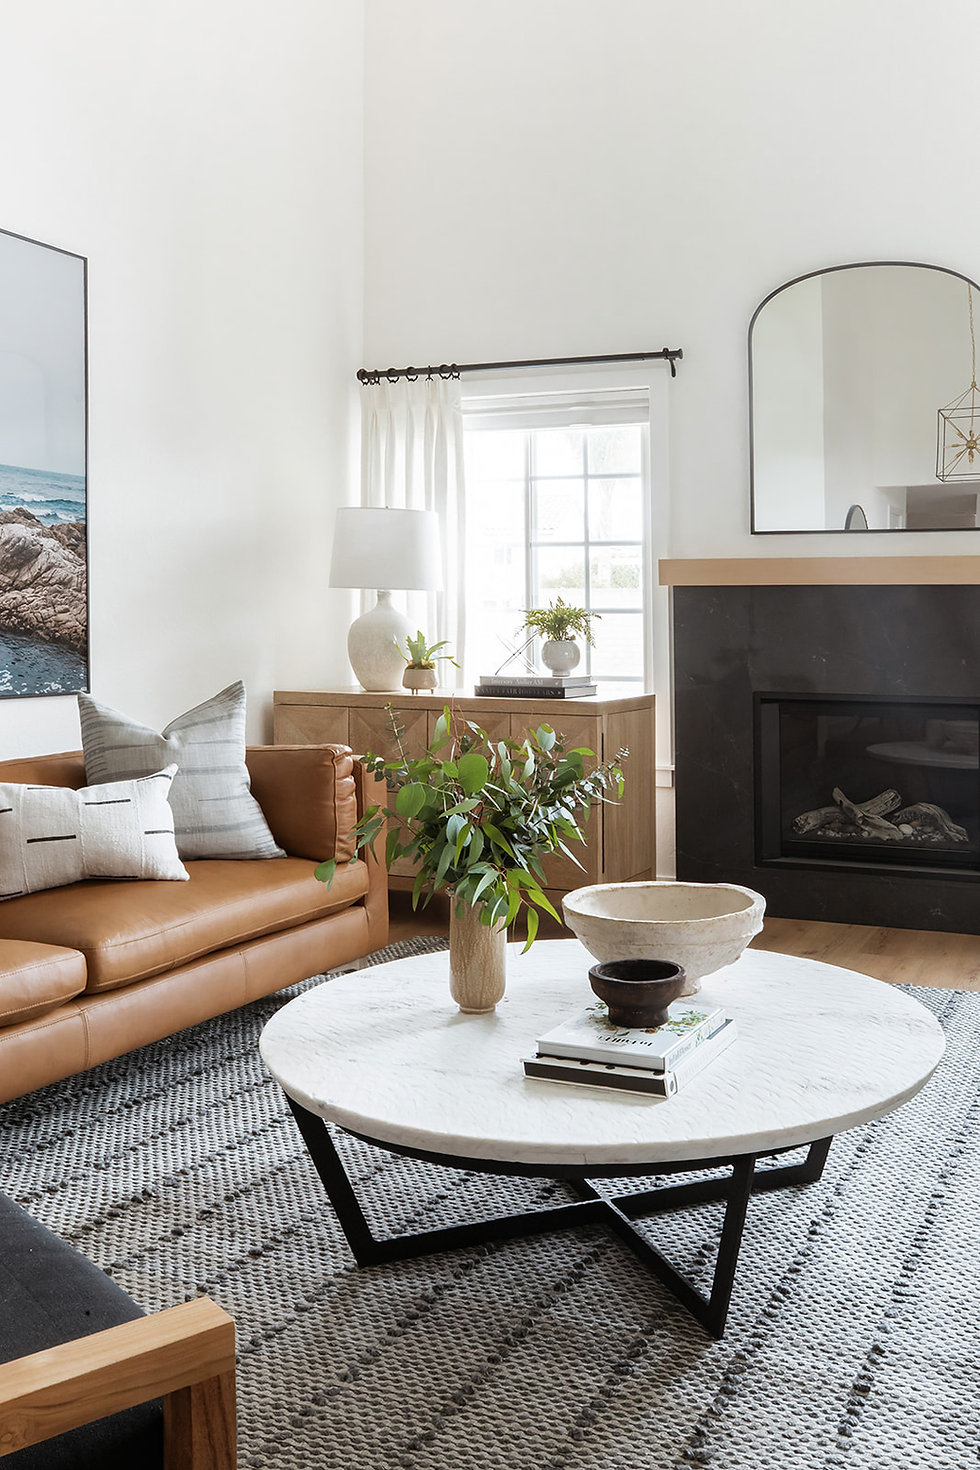 Where to Invest Your Renovation Budget